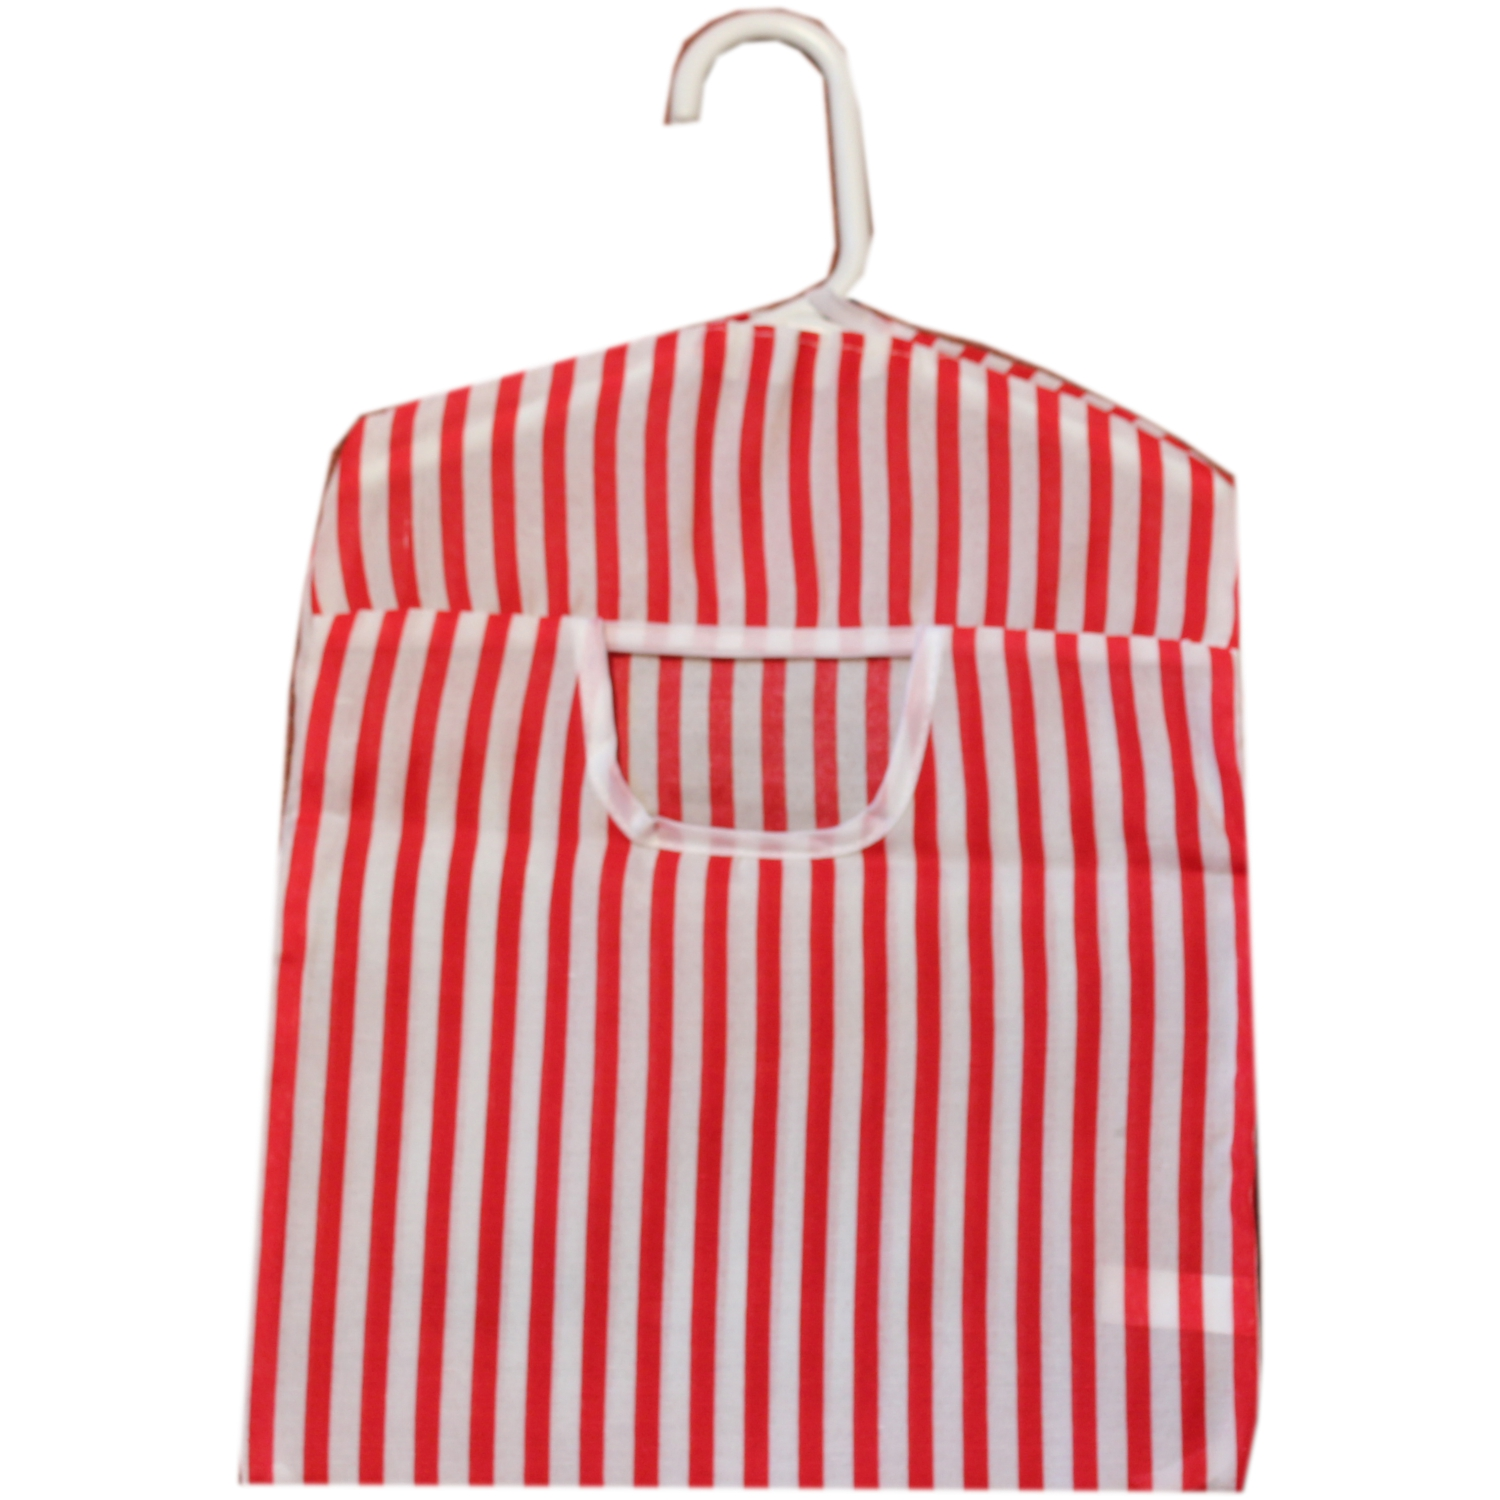 British Seaside Stripe Design Peg Bag - Red